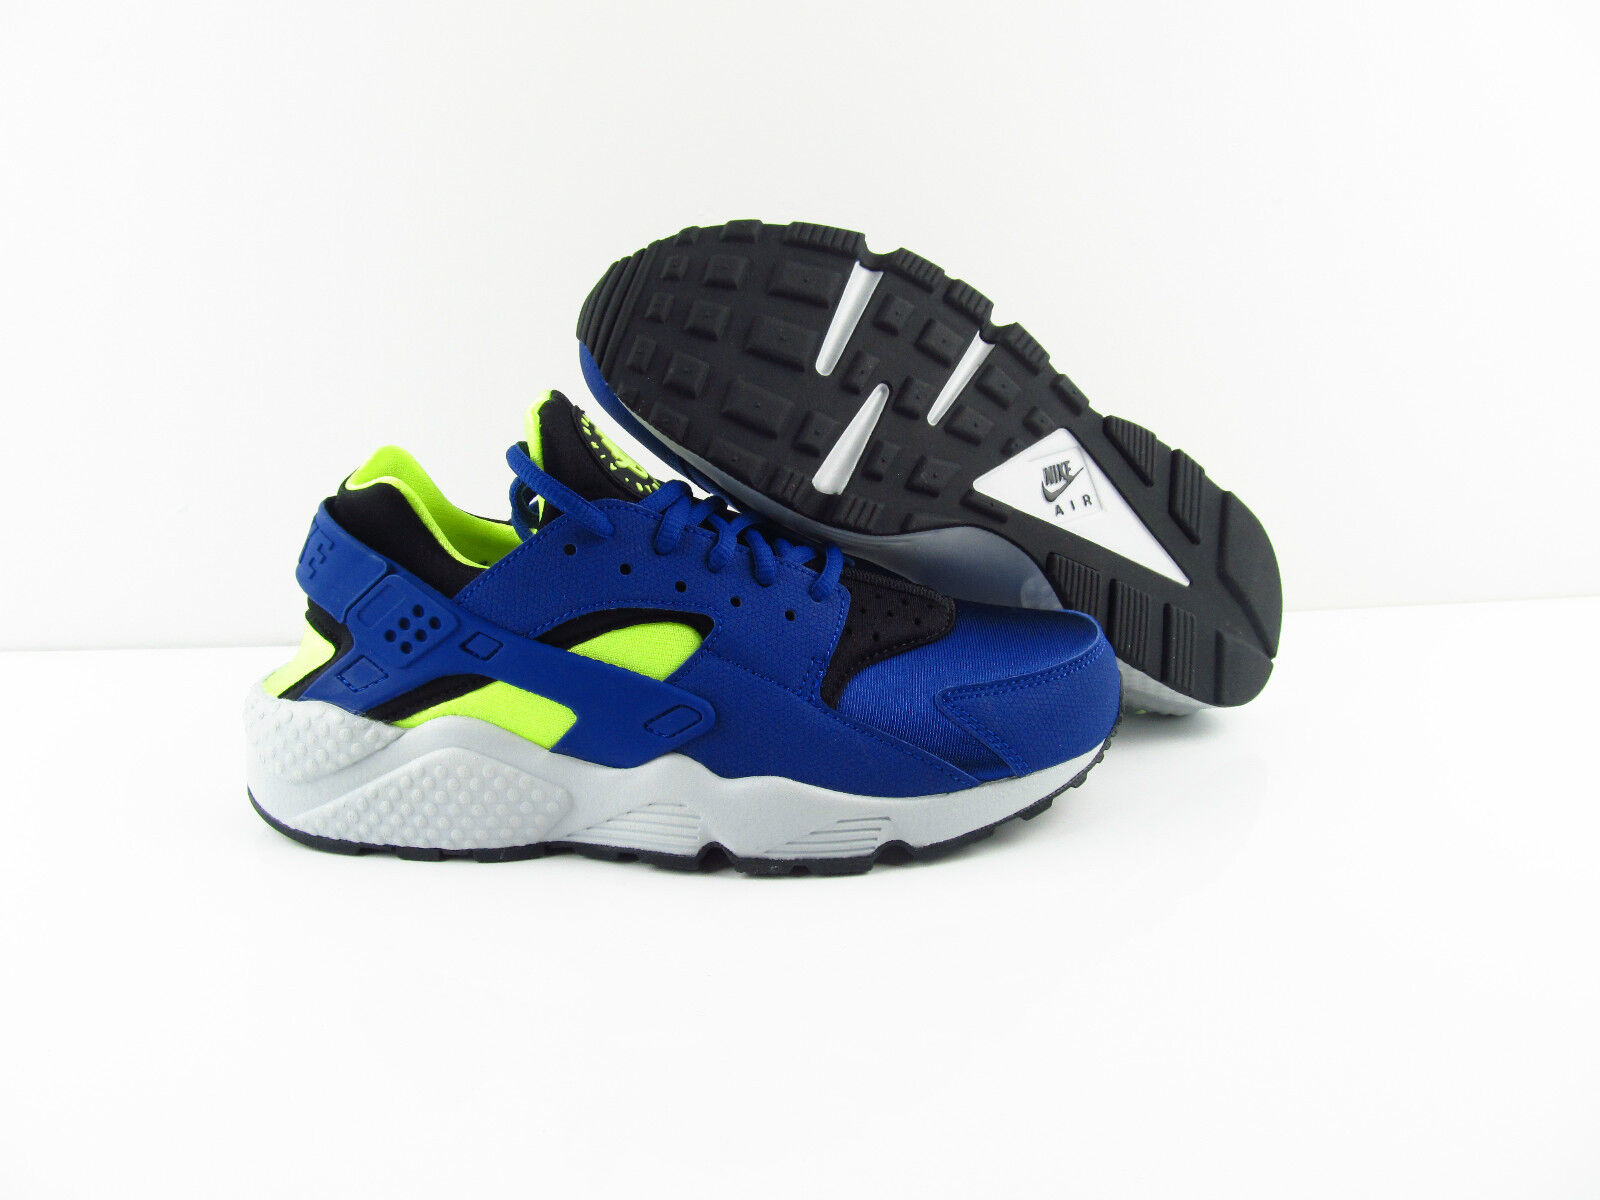 Nike Air Huarache Run Deep Royal Blue Black Platinum New The latest discount shoes for men and women